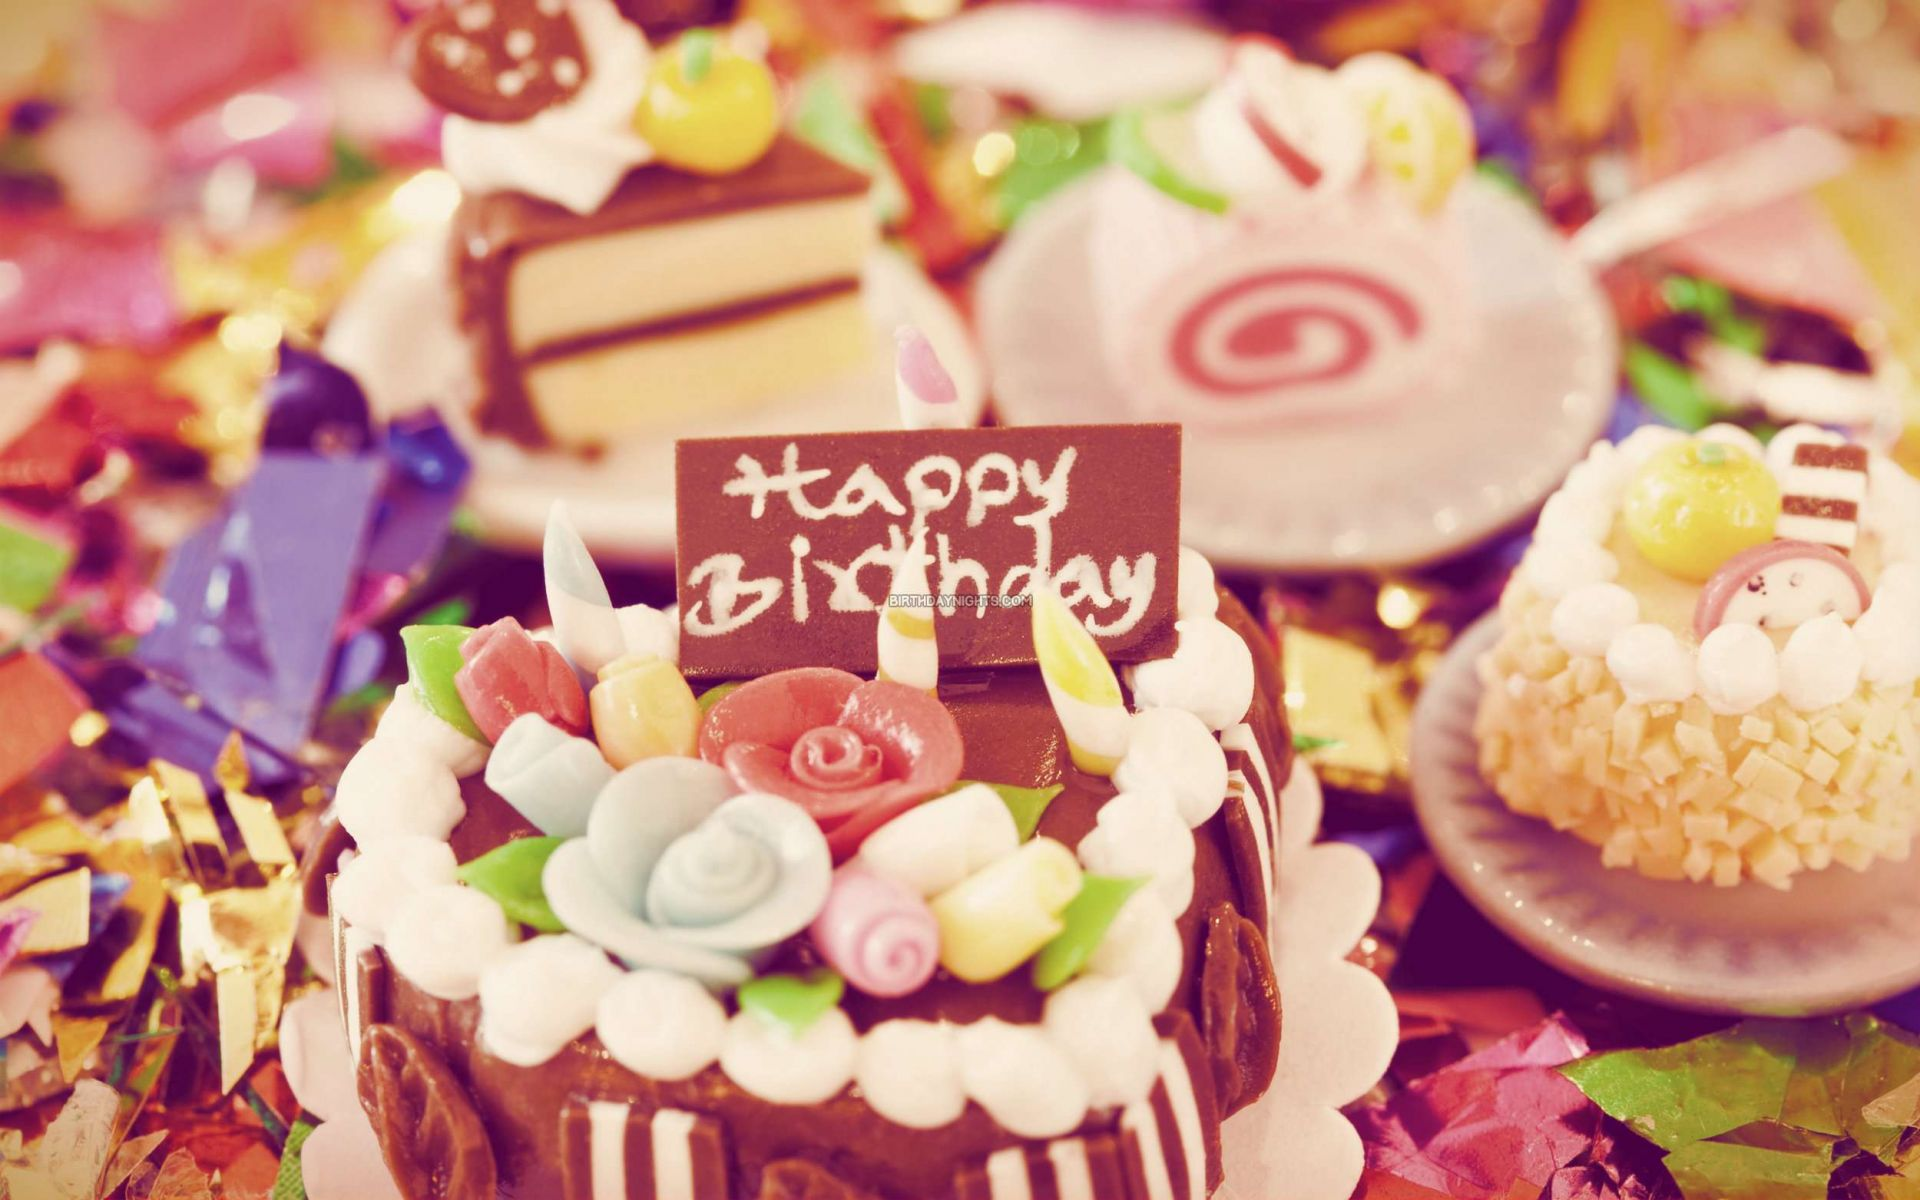 birthday cake wallpaper for mobile ; happy-birthday-cake-pictures-with-candle-wallpapers